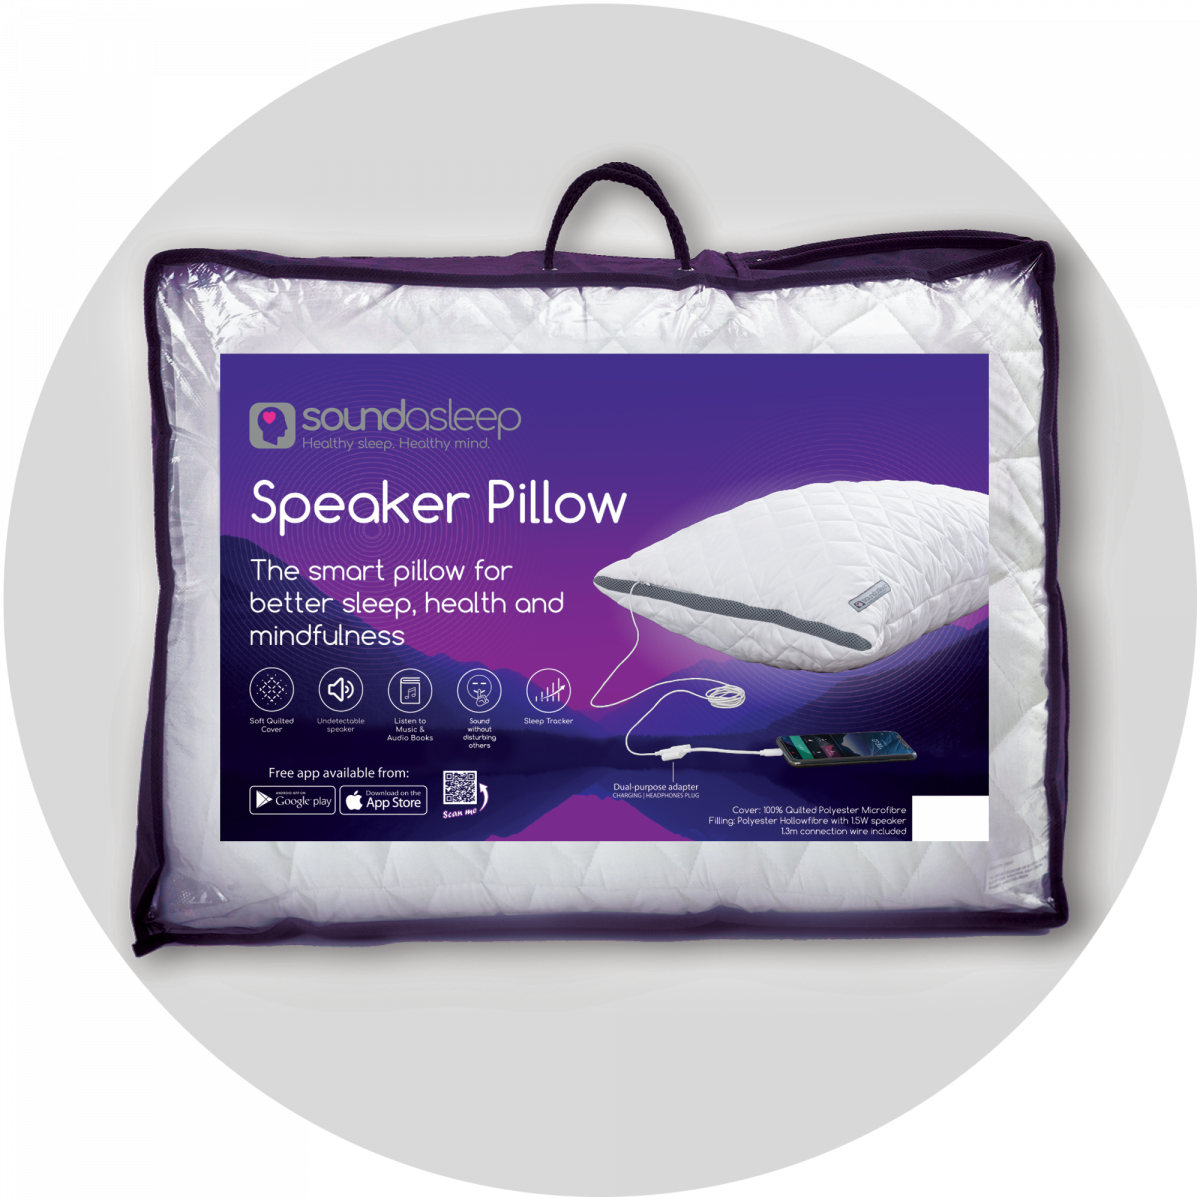 pillow-product-image-5